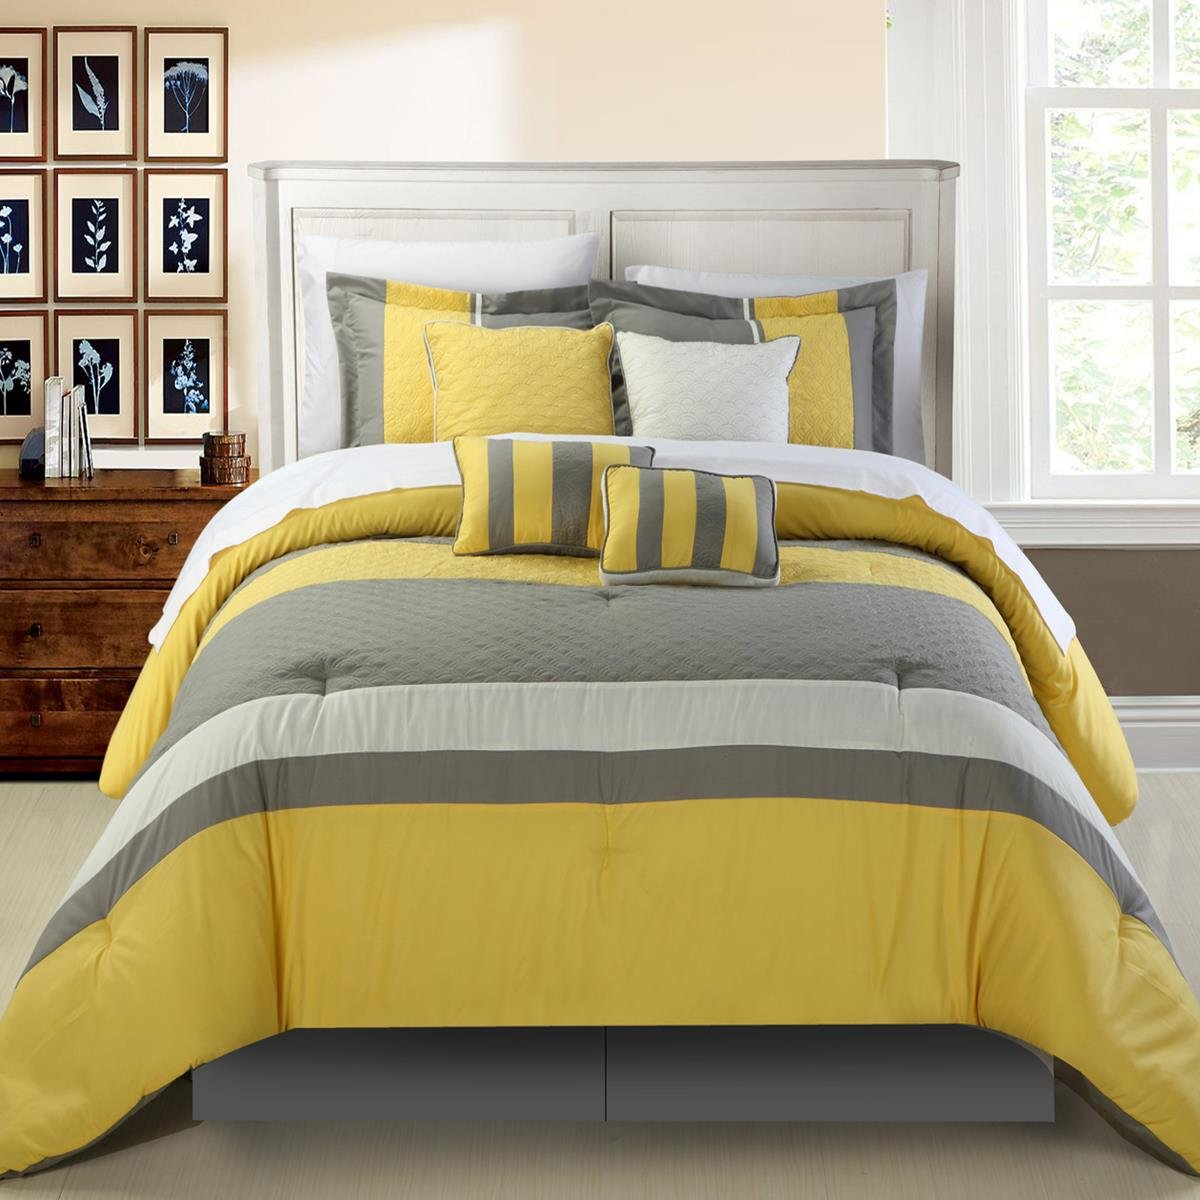 Gray And Yellow Bedroom: Yellow And Grey Bedding